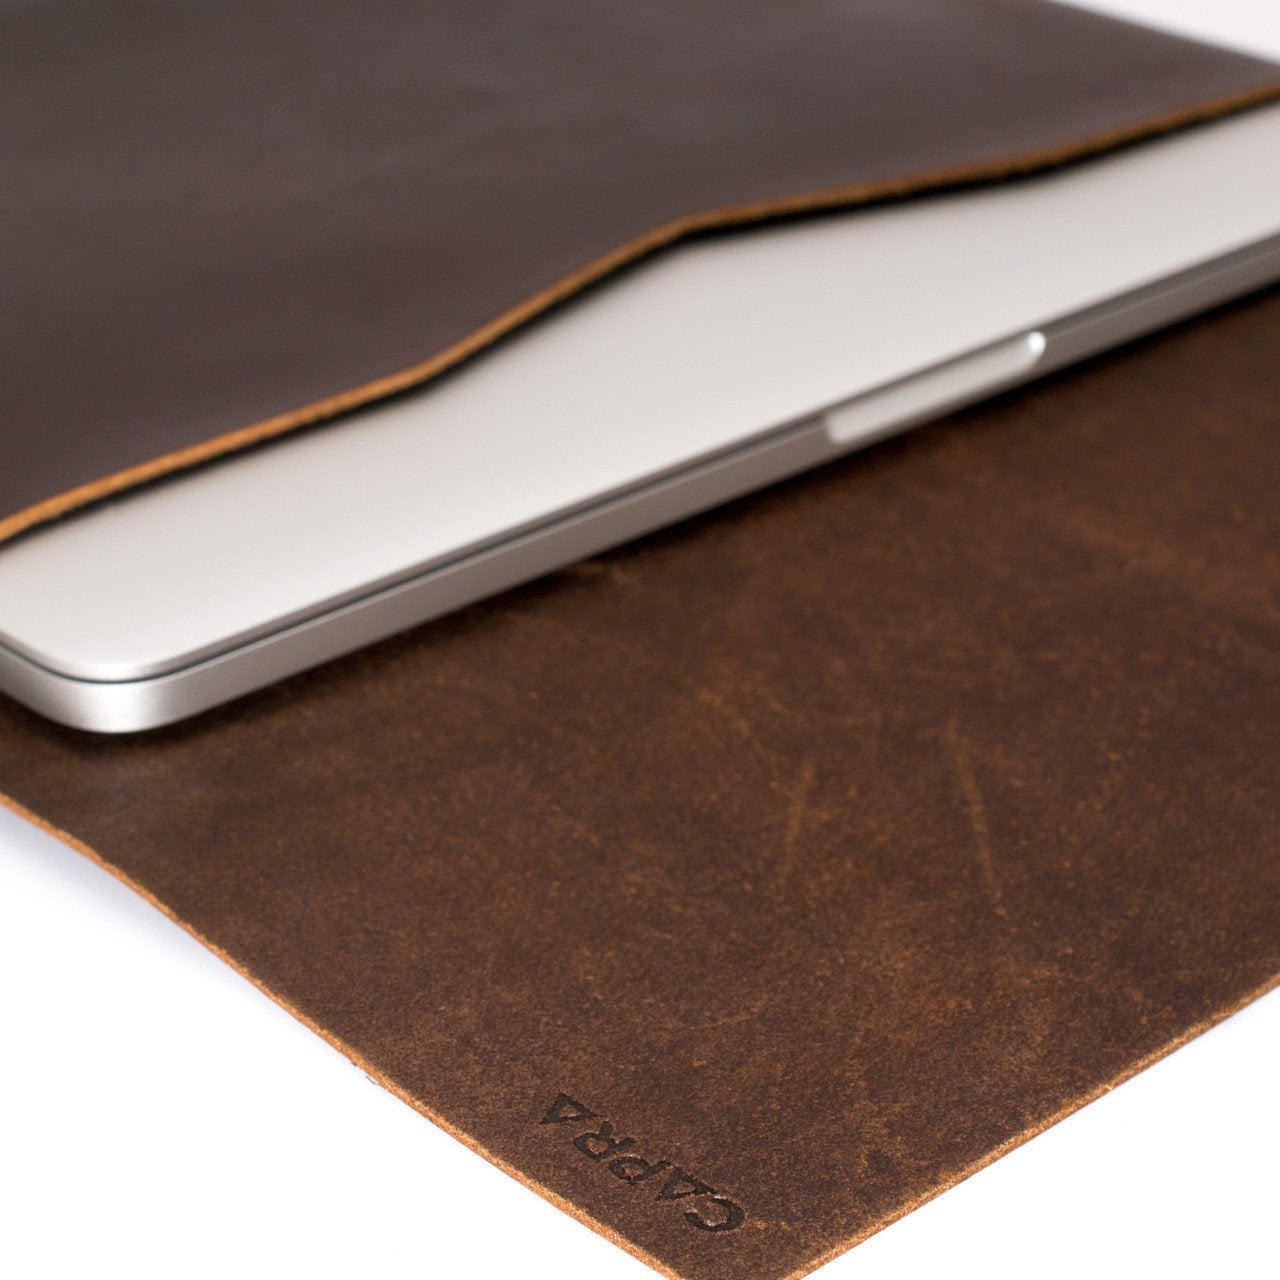 Closed dark leather case for Google Pixelbook laptop